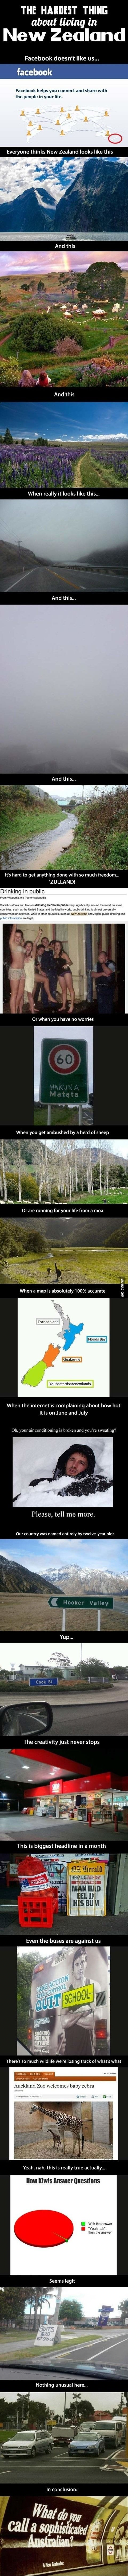 A look at New Zealand